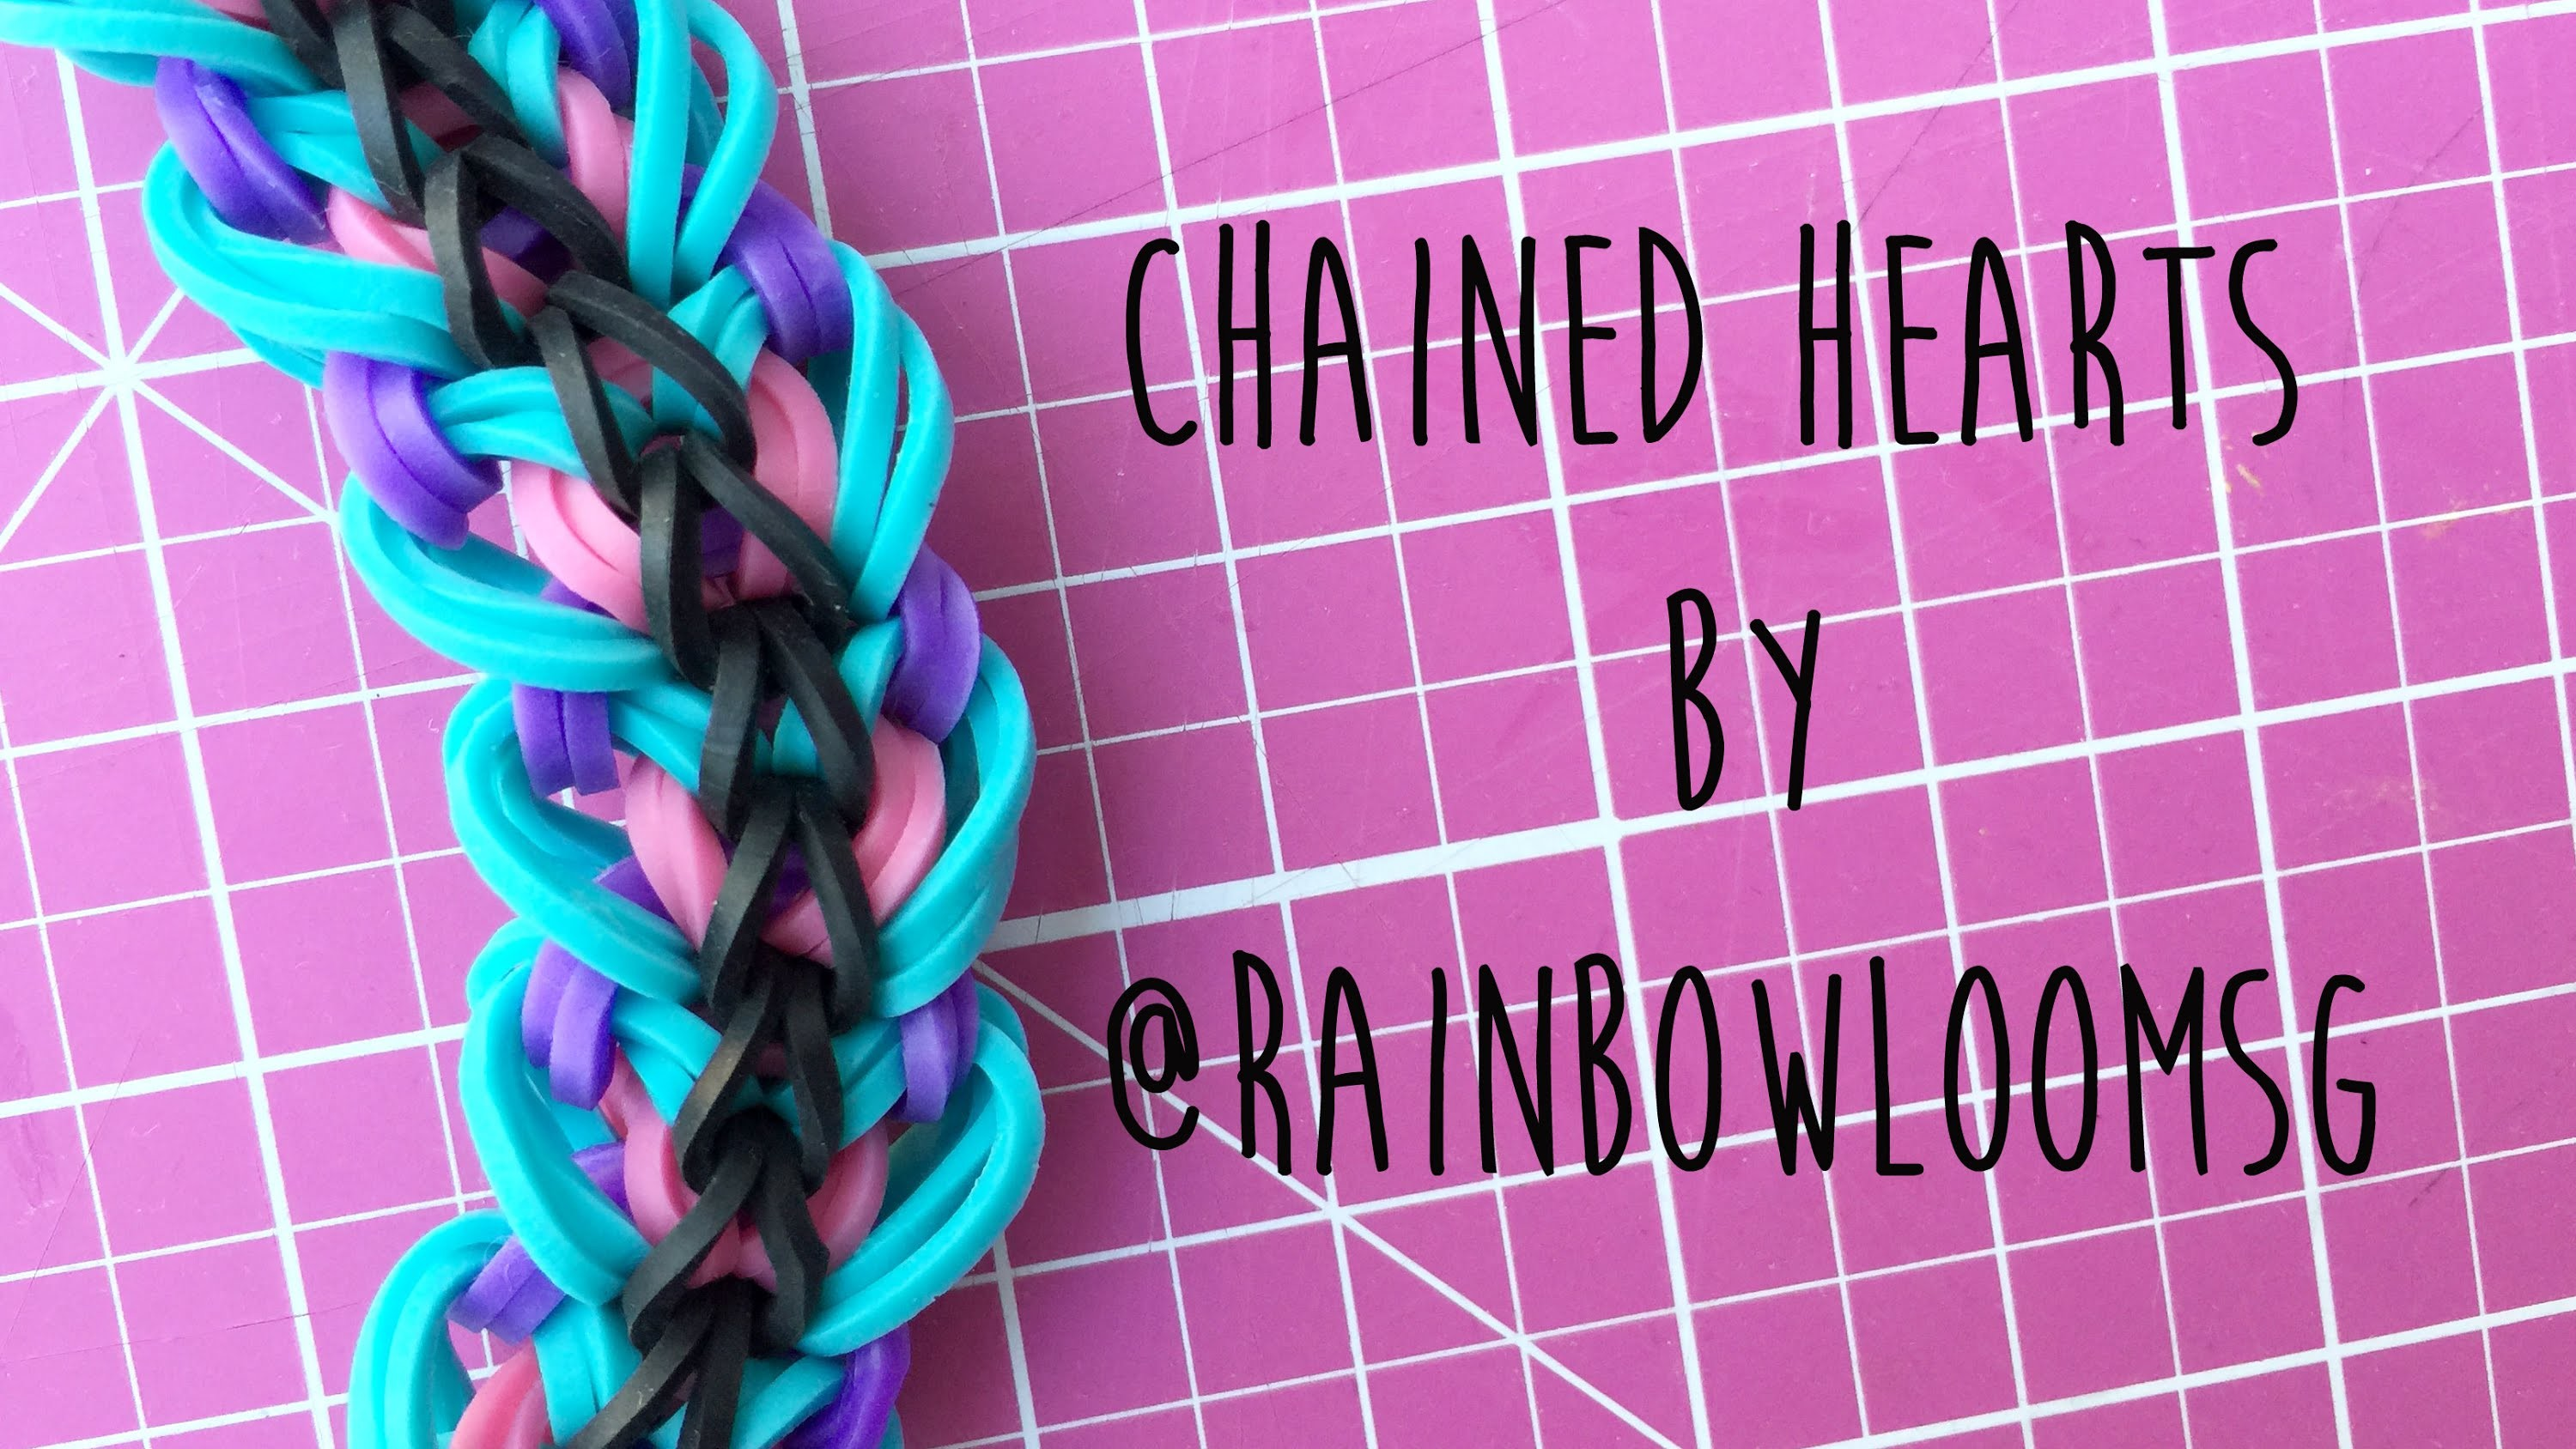 Rainbow Loom Chained Hearts by @RainbowLoomSG 4 peg tutorial